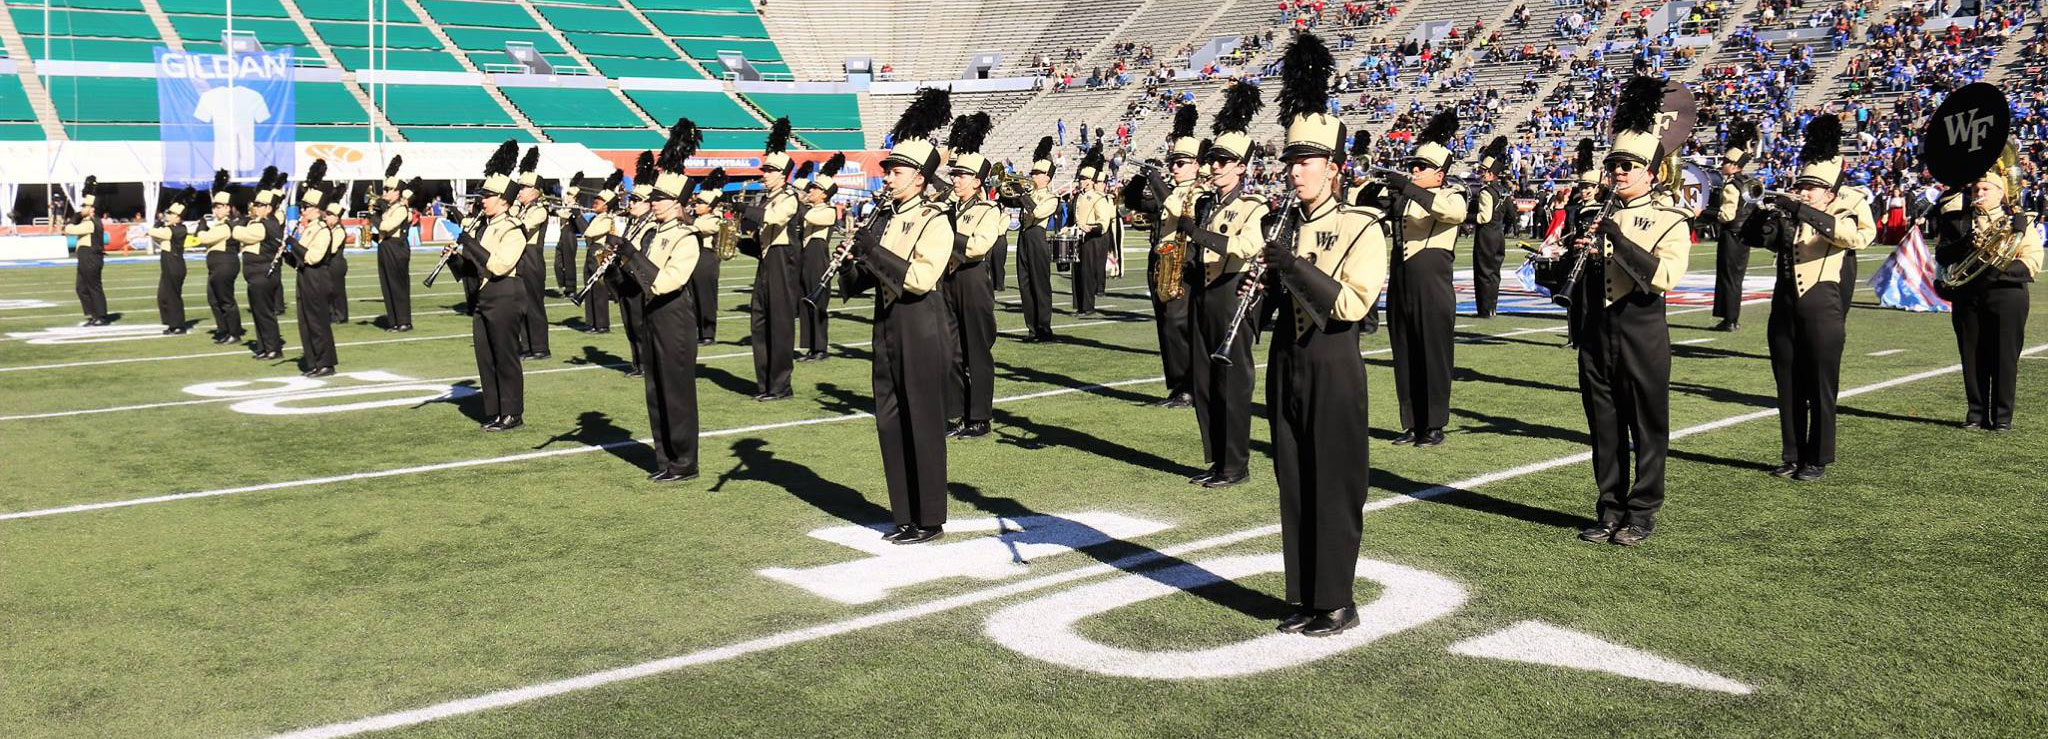 Wake Forest University Athletic Bands | The Spirit of the Old Gold